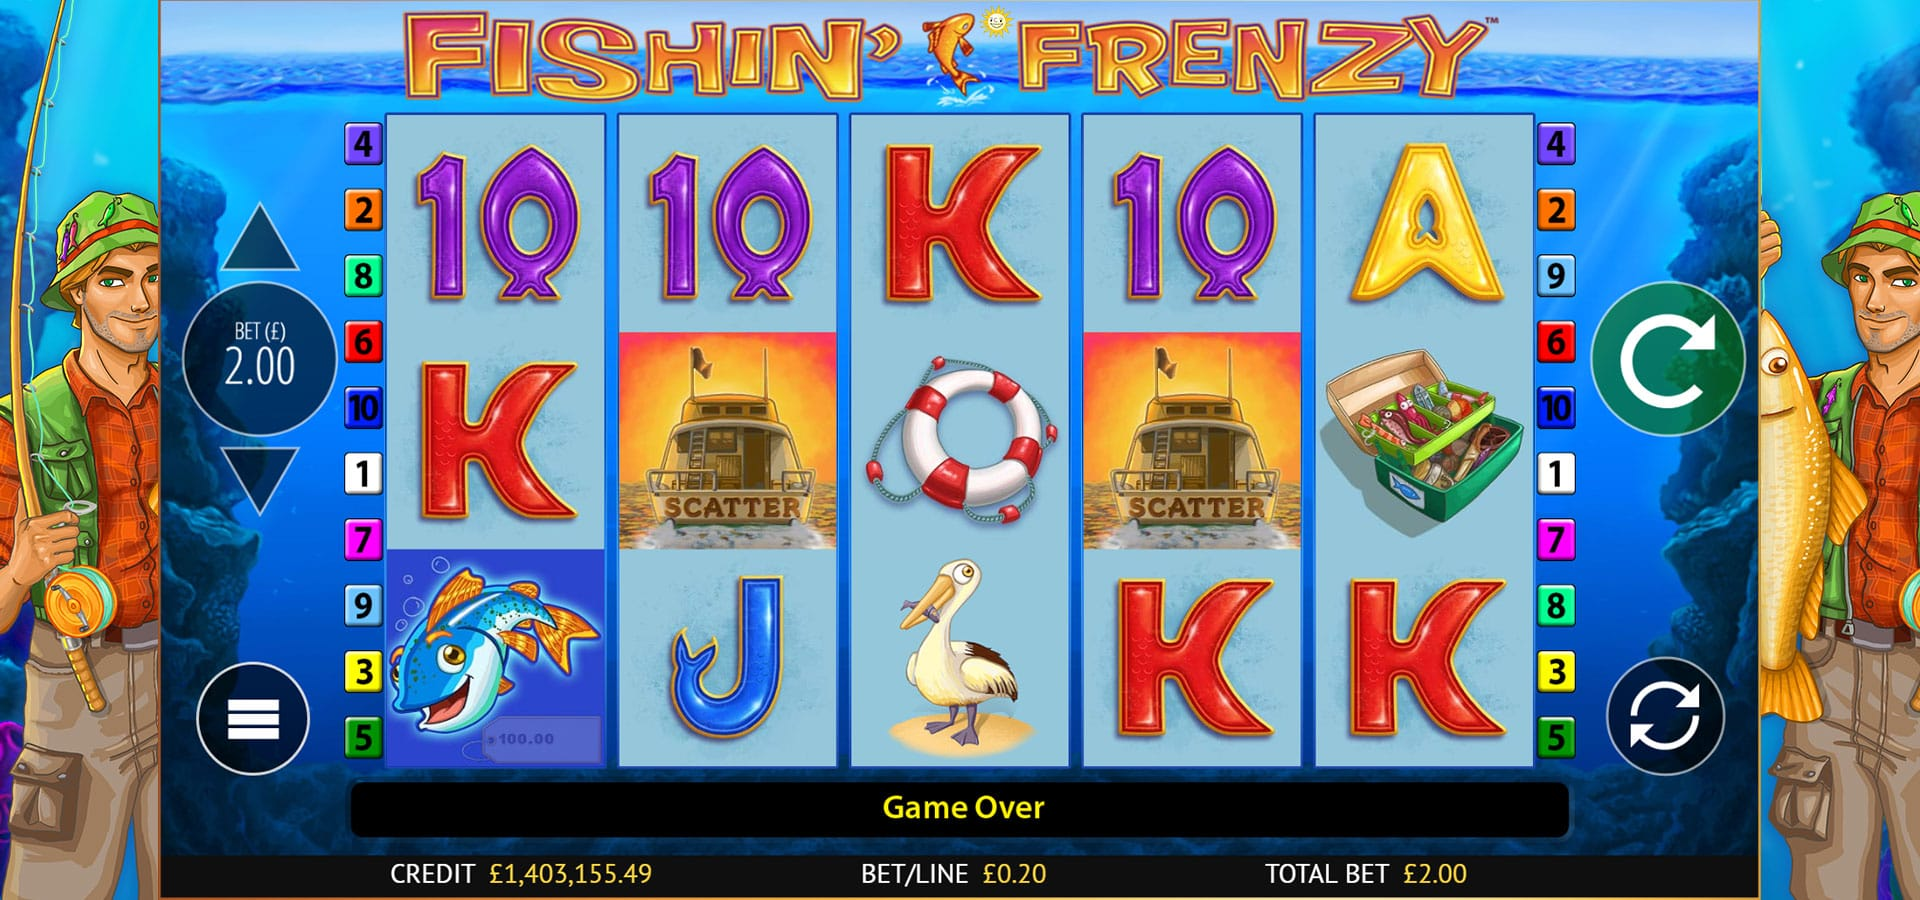 fishin frenzy gameplay bingo